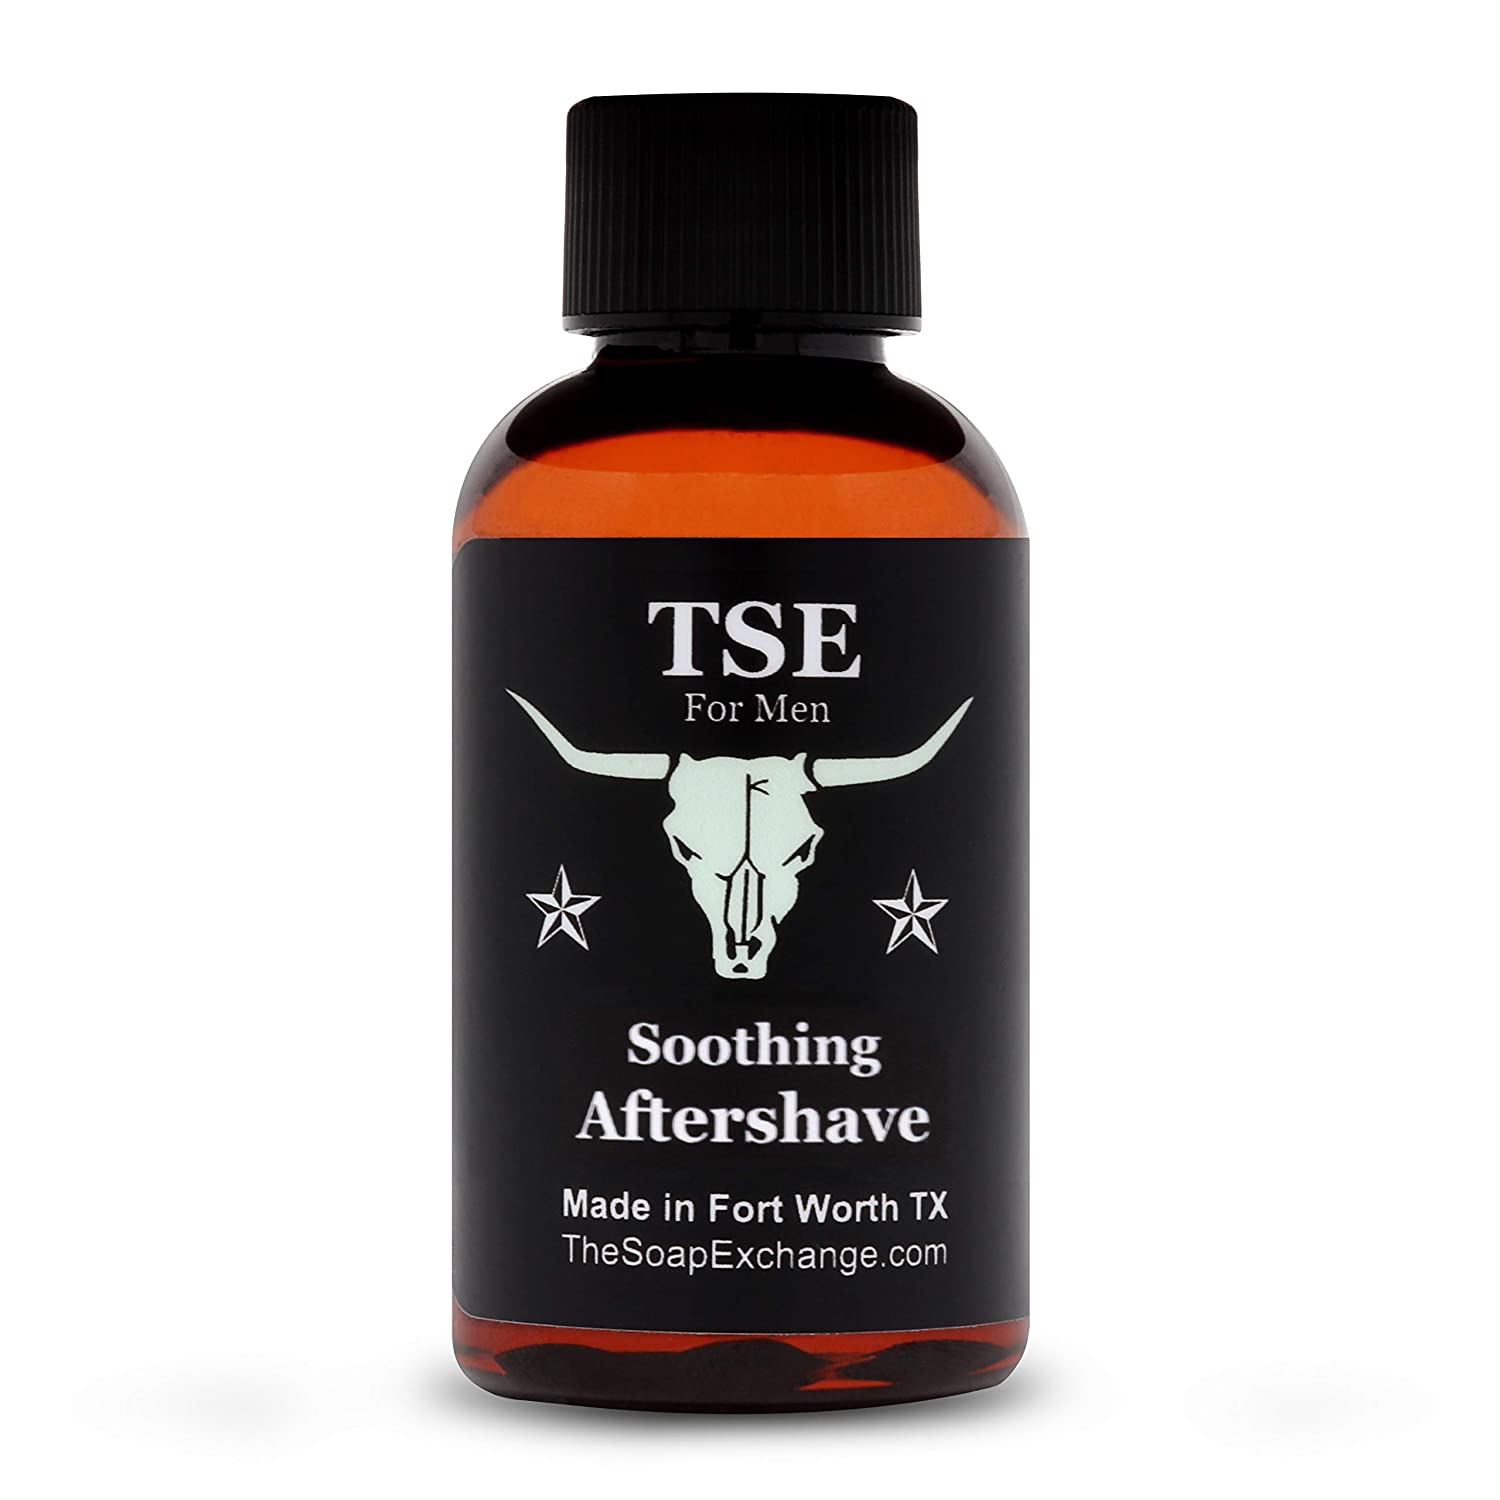 TSE for Men Soothing Aftershave New products world's highest quality popular Ing Scent OFFicial - Barbershop Natural